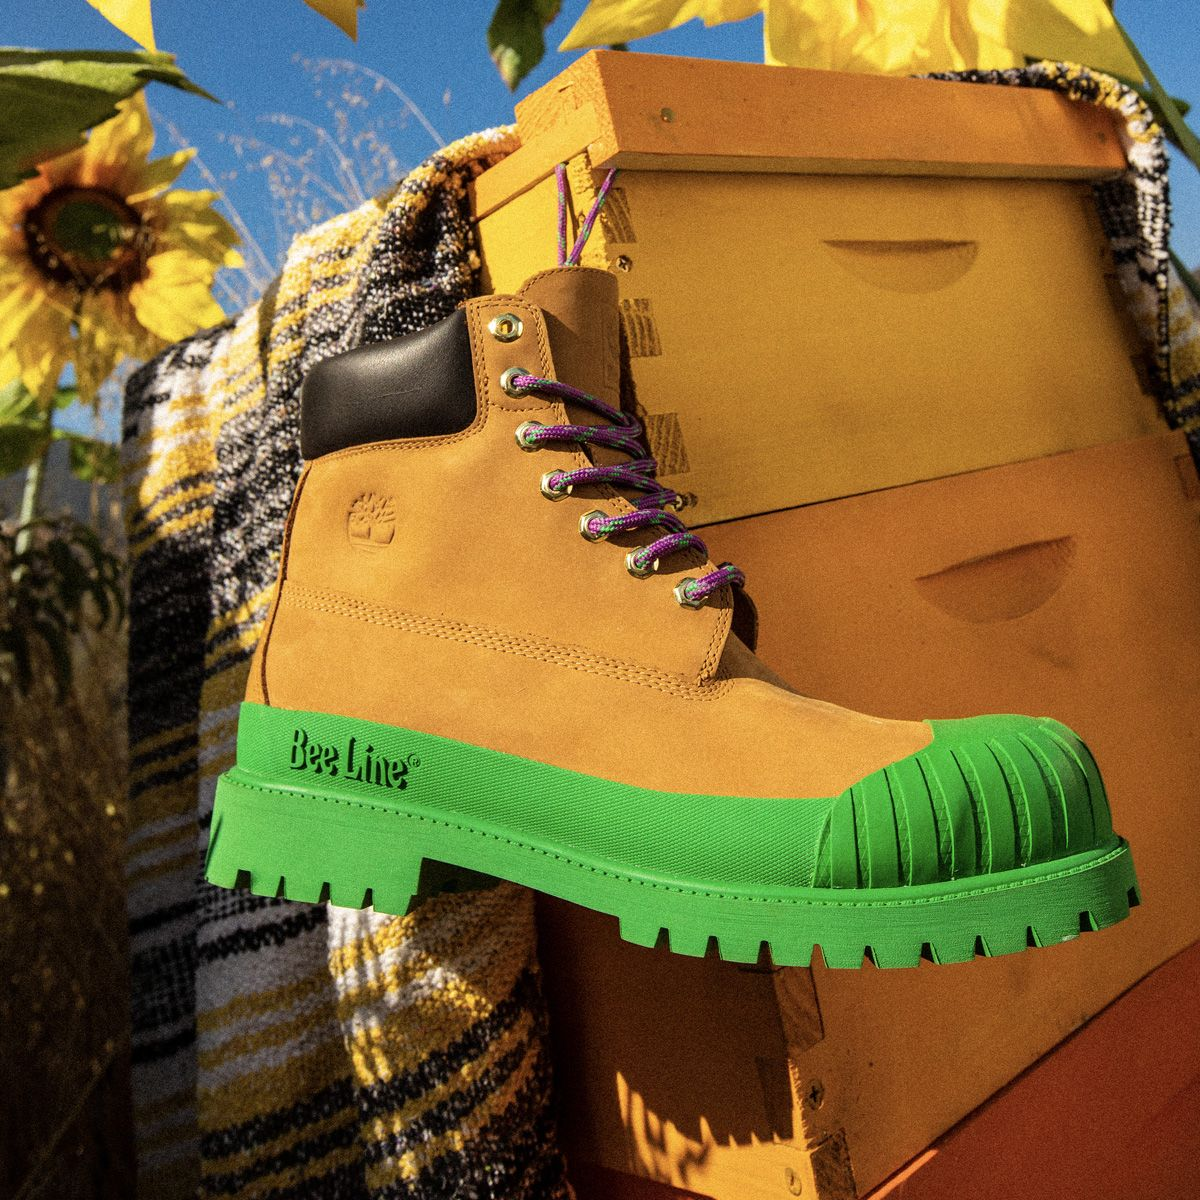 Bee Line Reworks Timberland's Iconic 6-Inch Boot 13